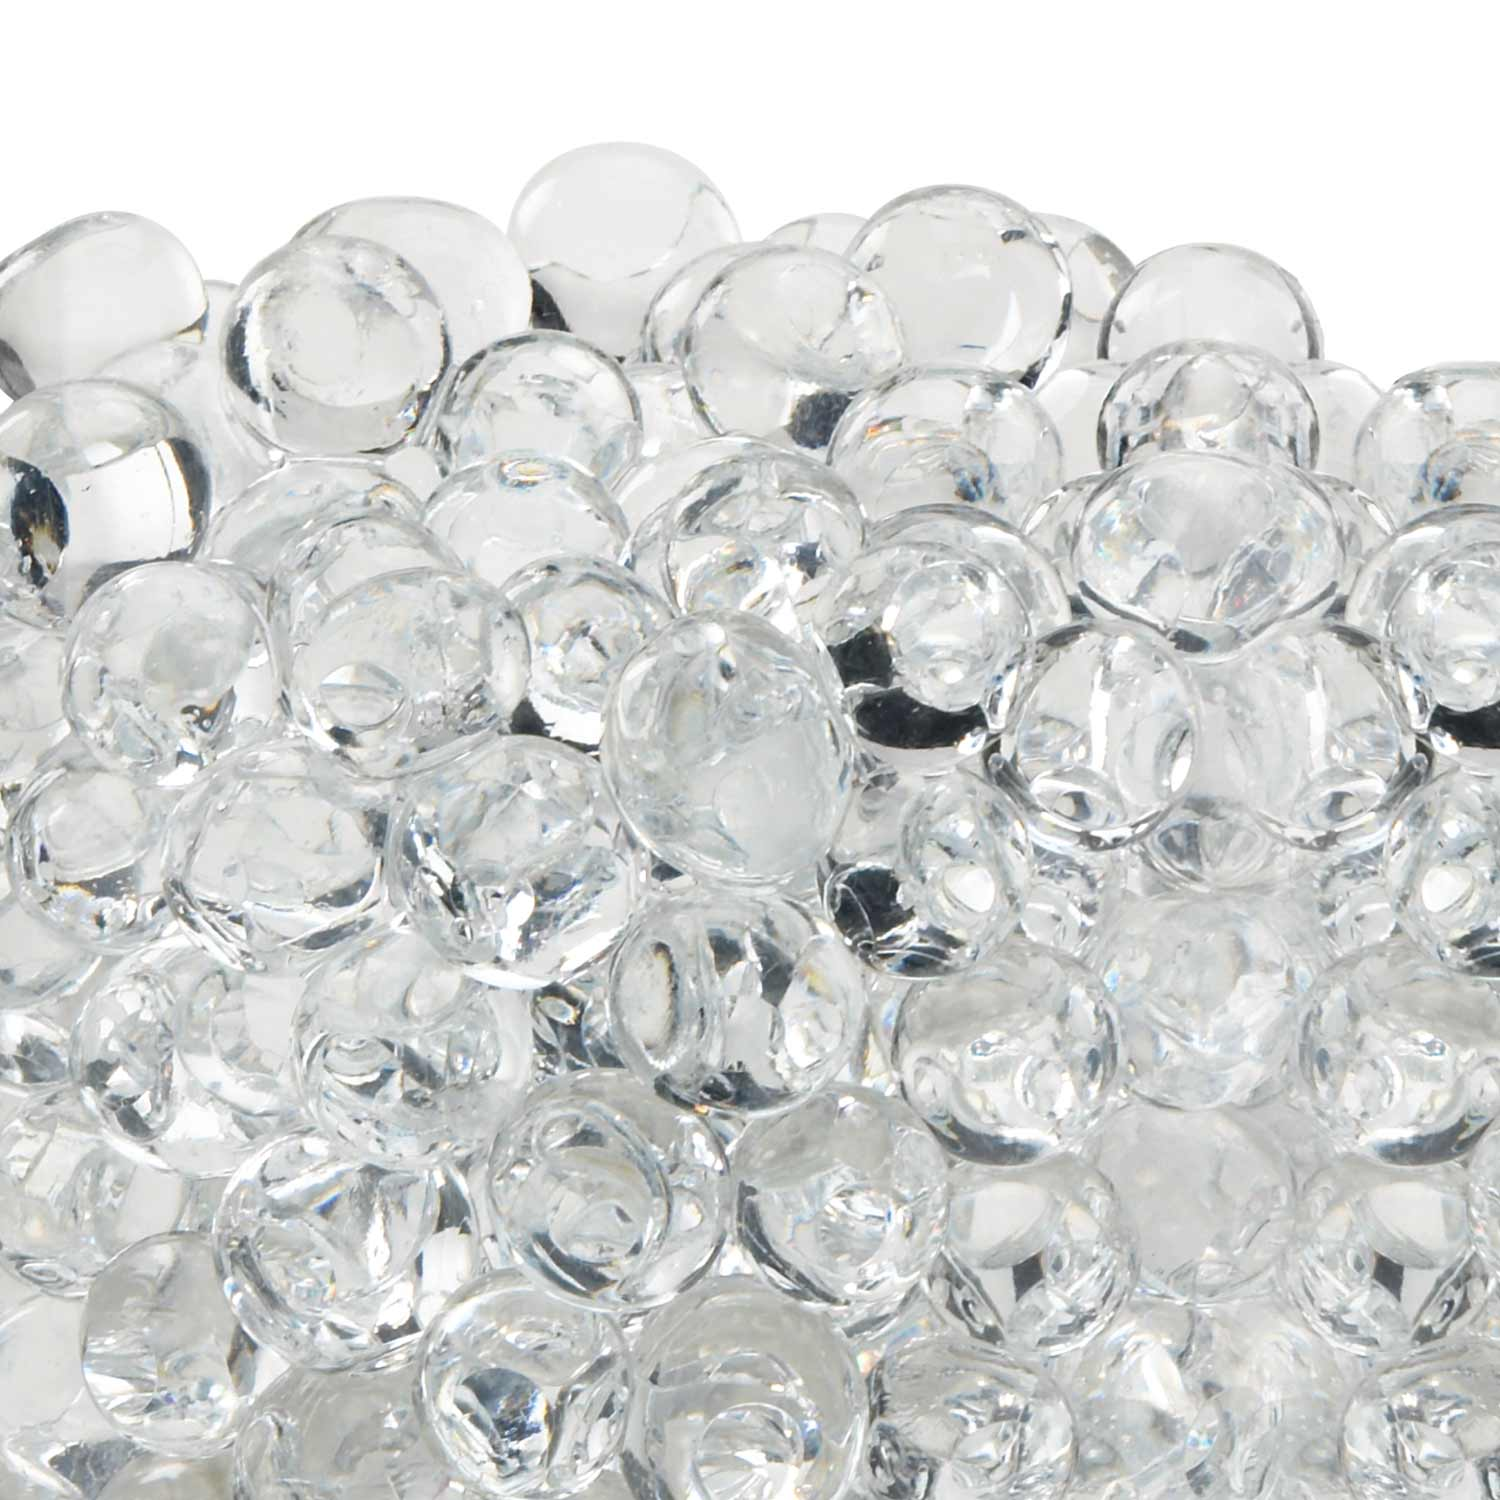 Jelly Marbles - Clear Spheres